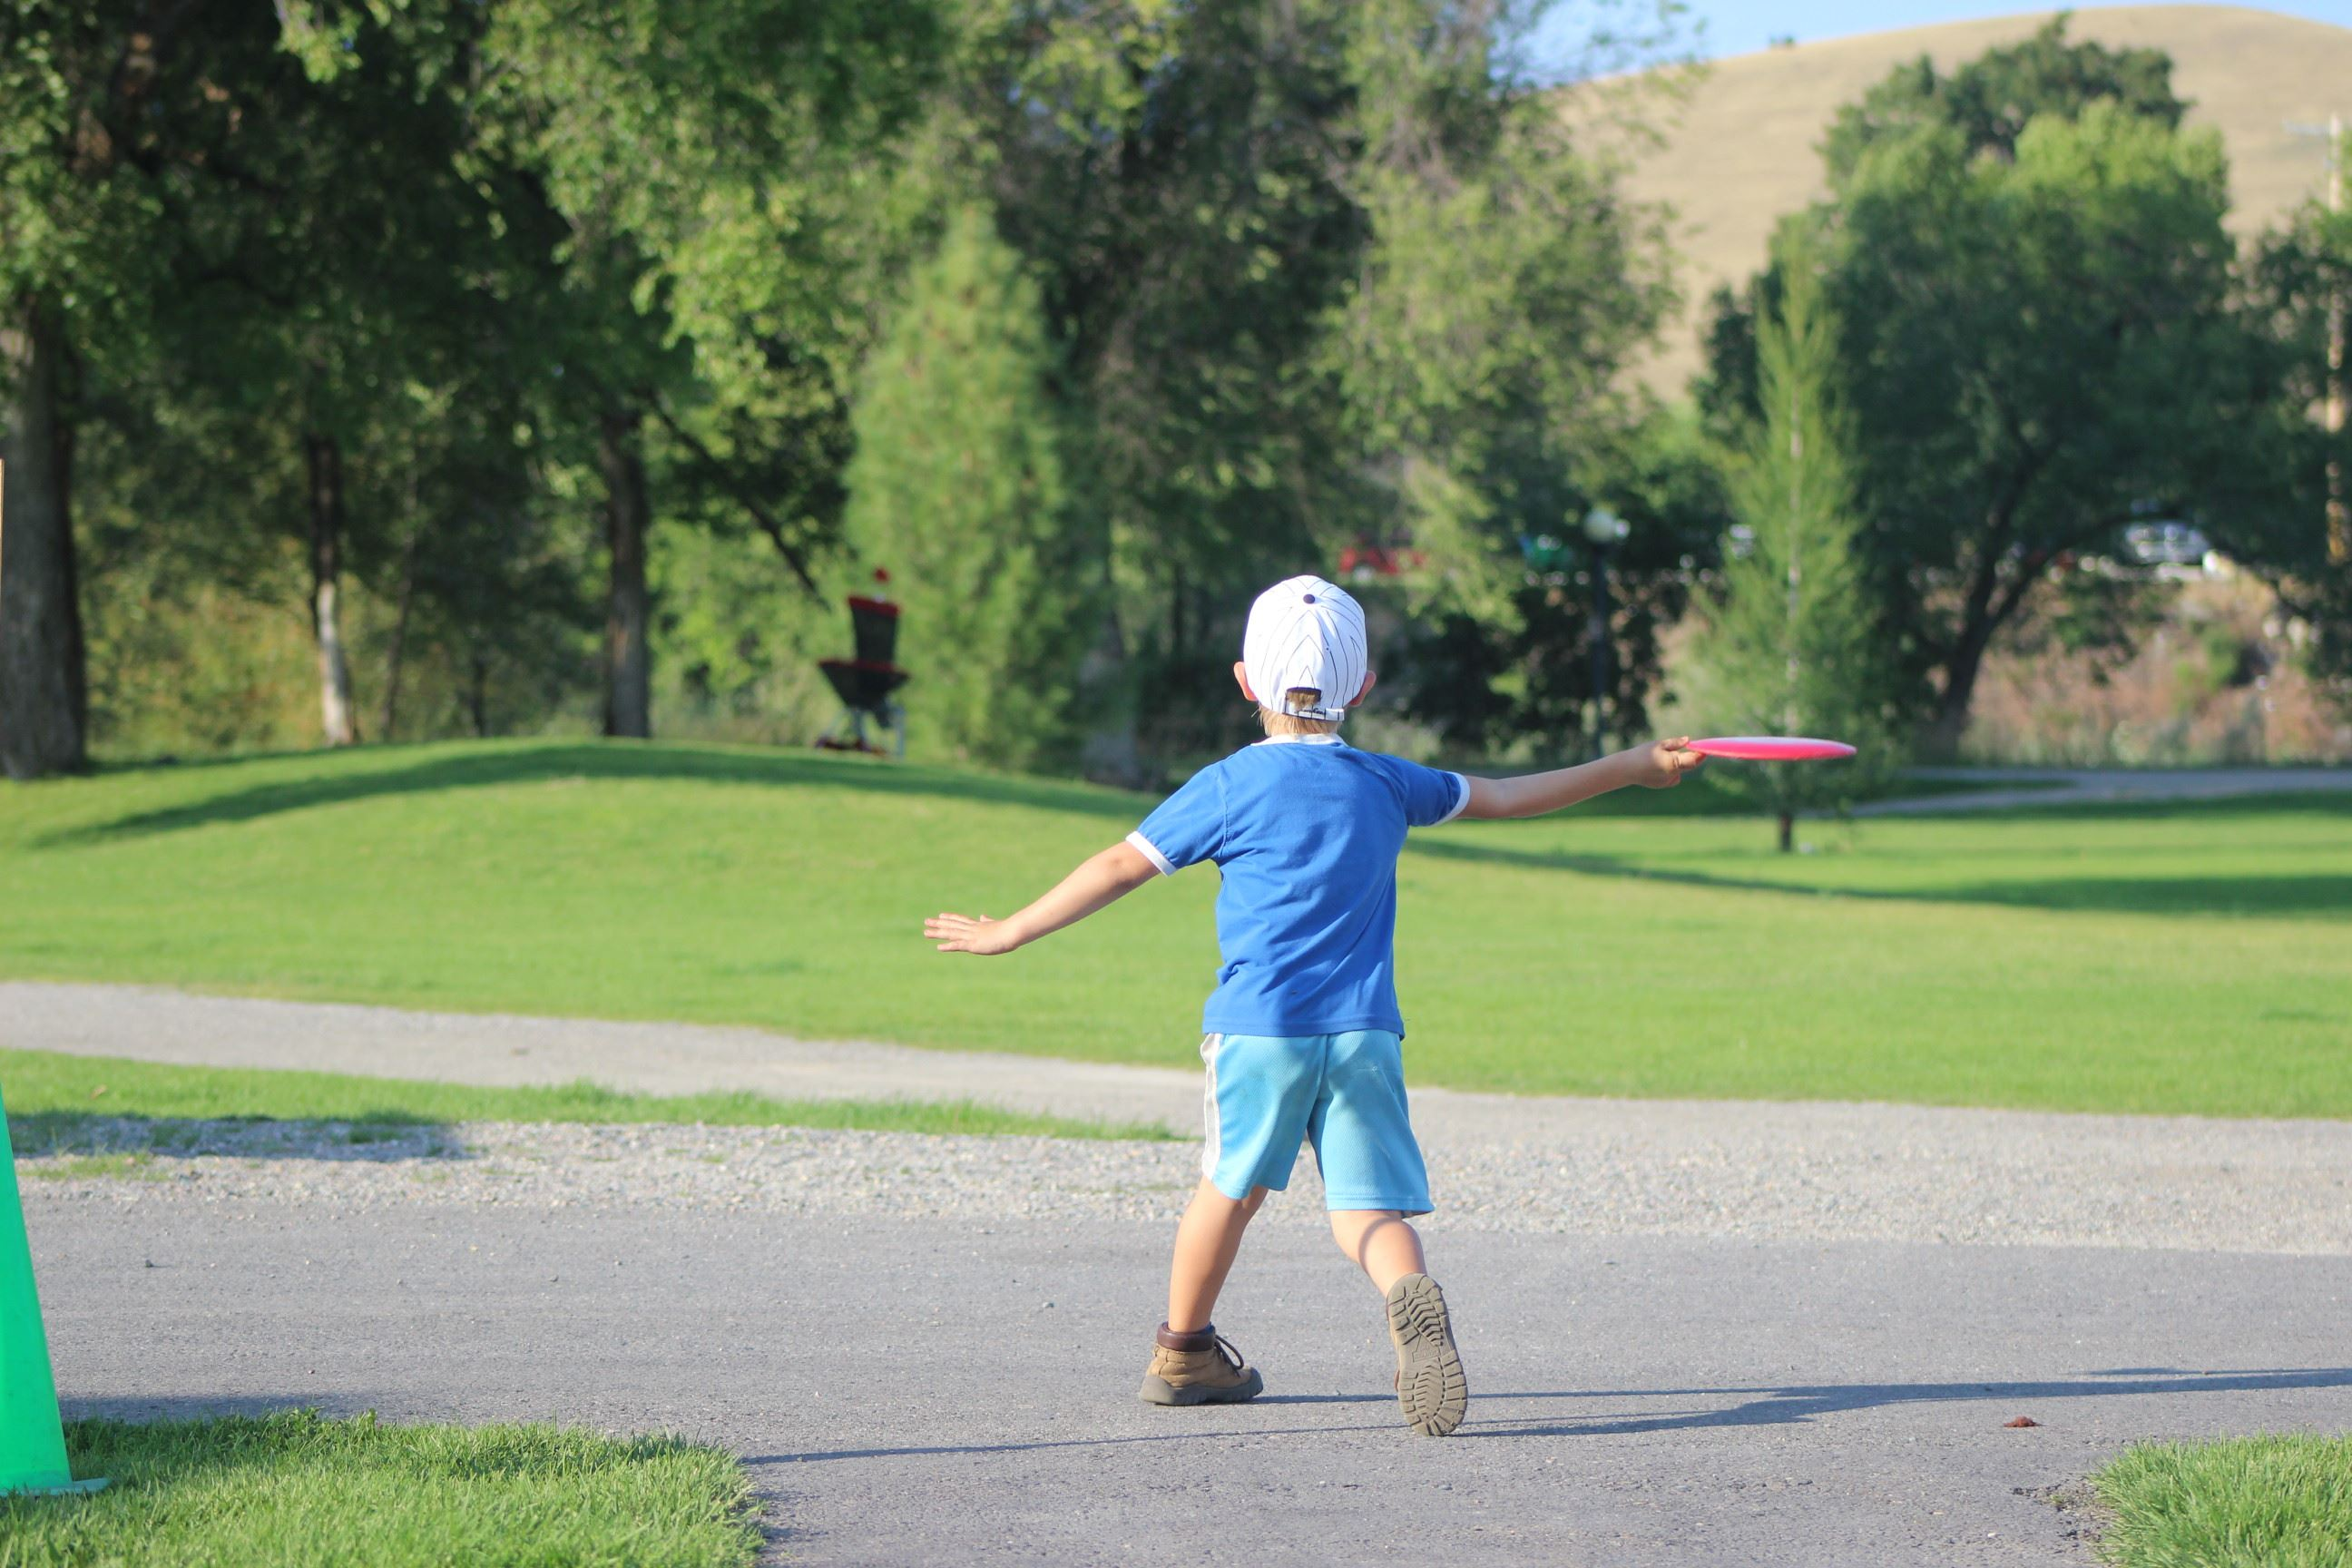 Folf in the Parks 2014 - Kid Throwing...awesome shot!